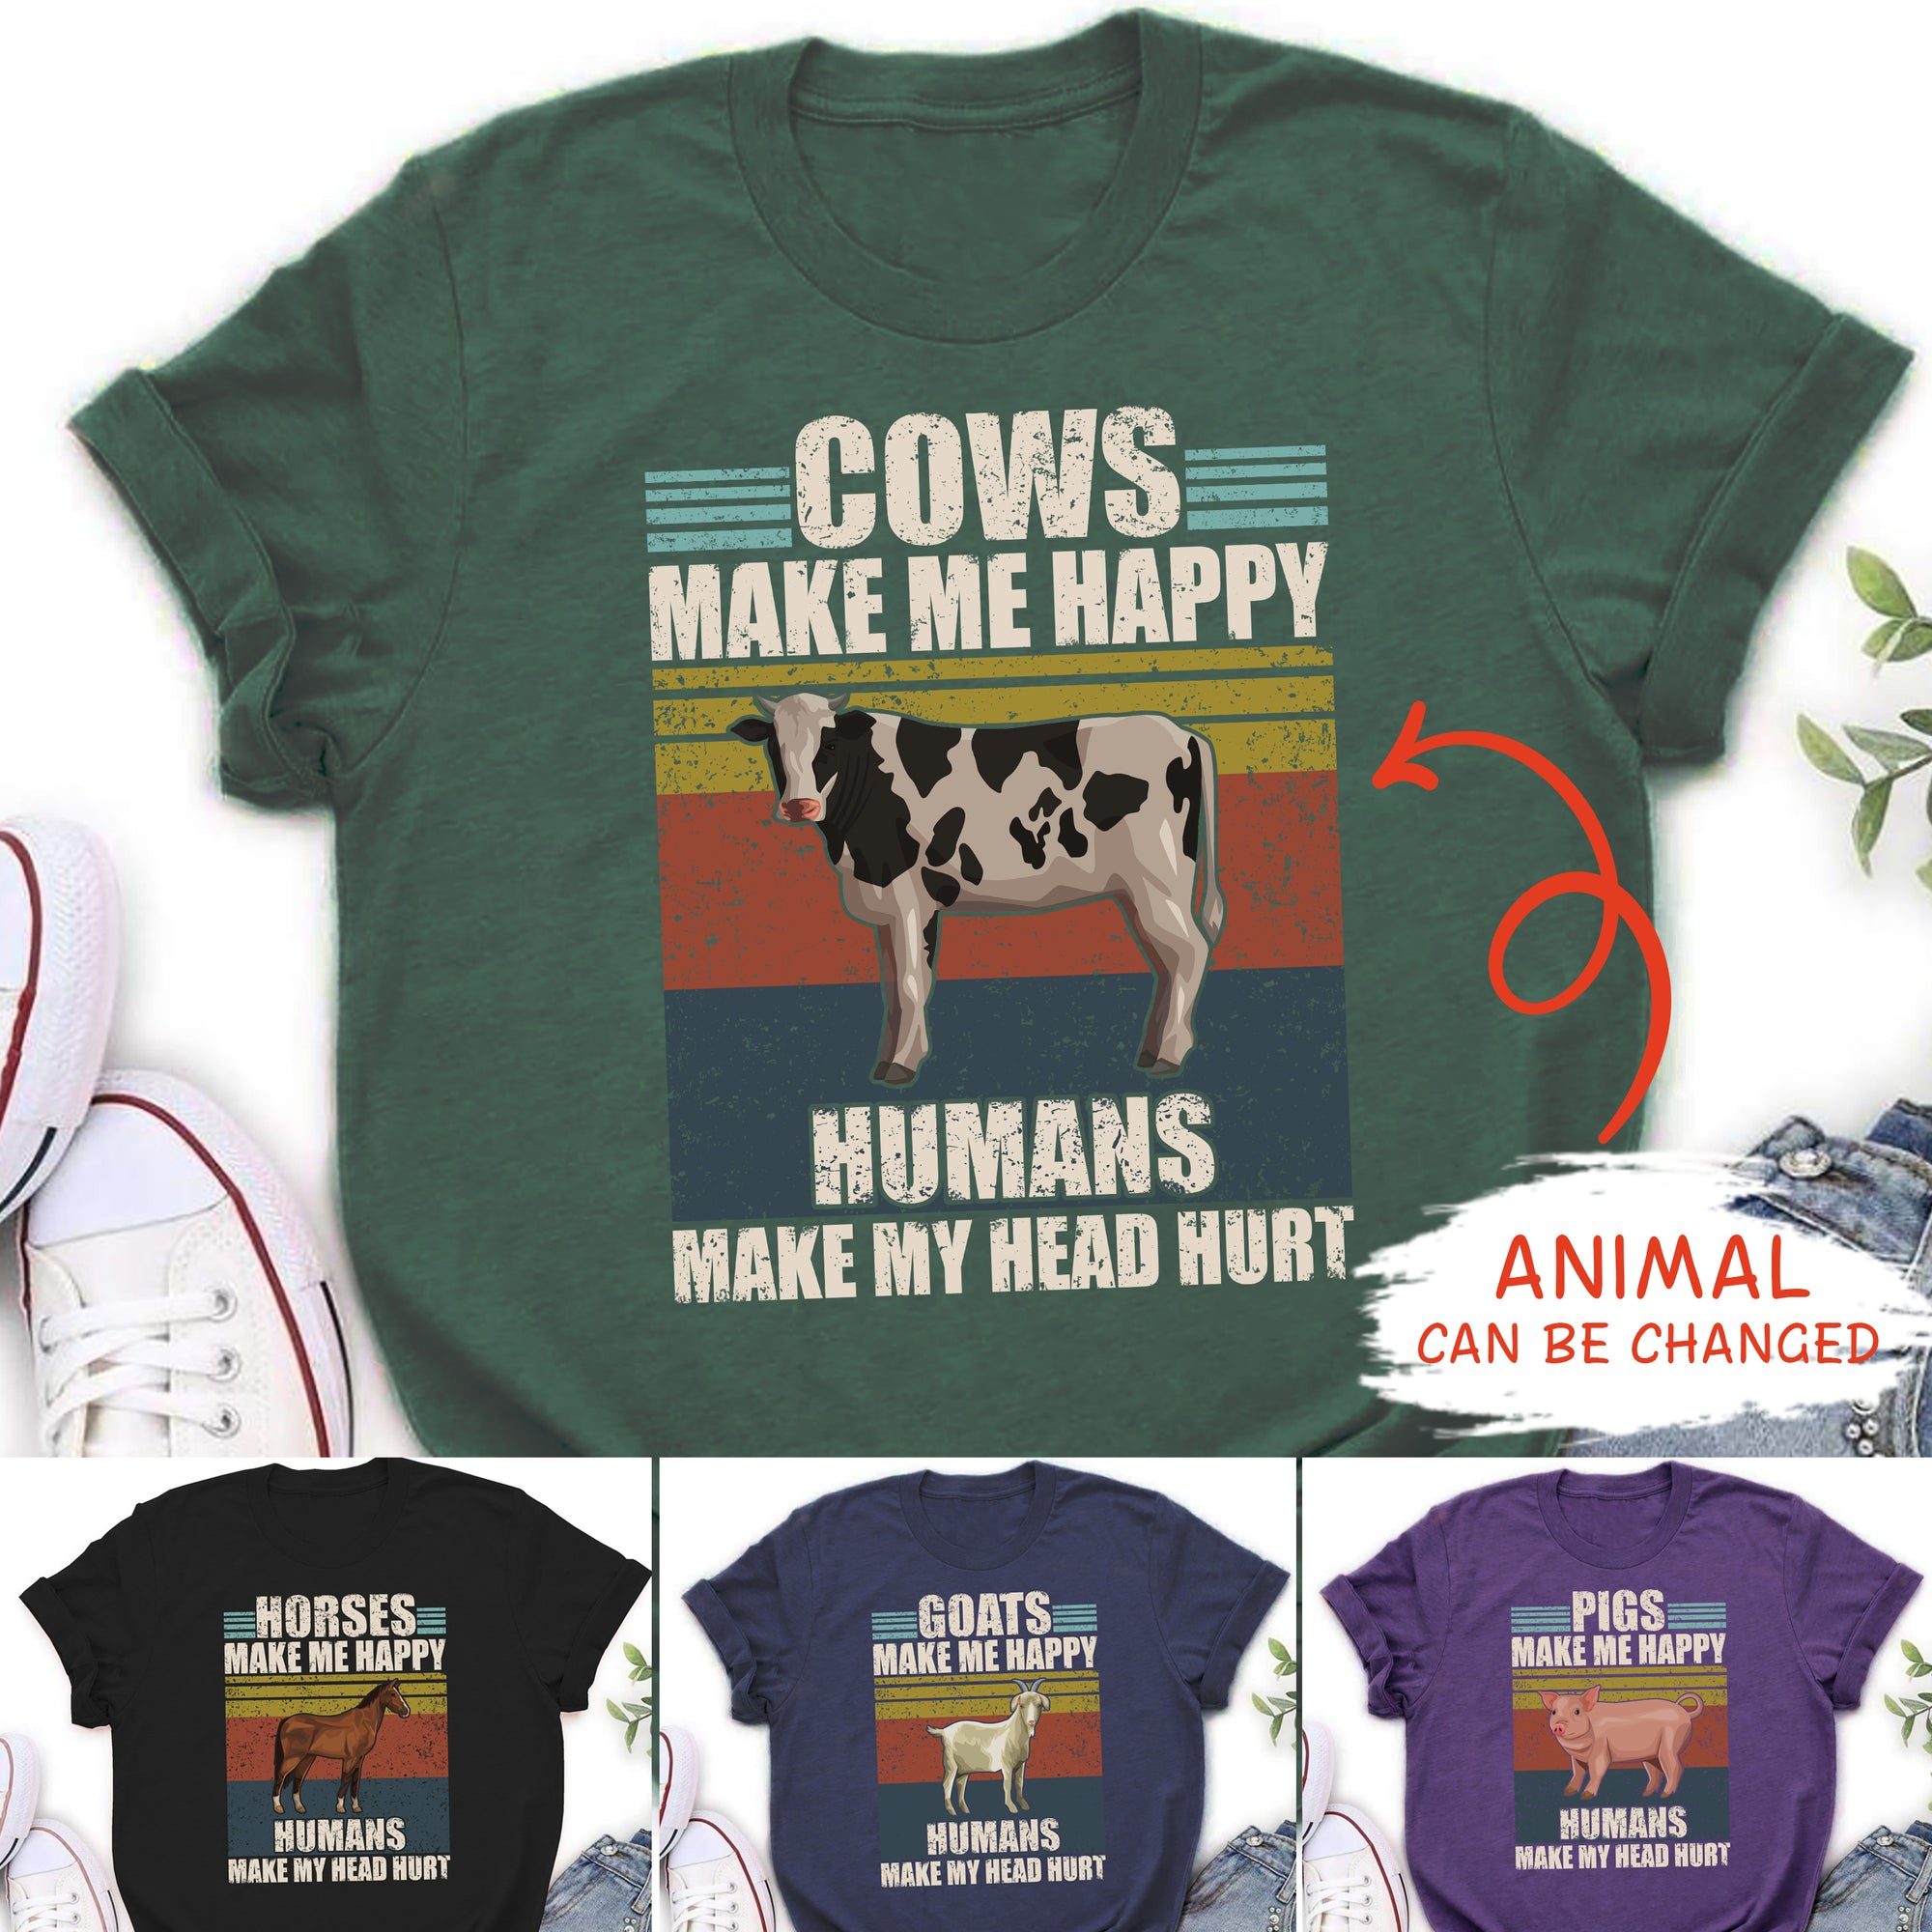 Unisex T-shirt - Make Me Happy - Farm Shirt, Animals Make Me Happy Shirt, Customized T-Shirt, Funny T-Shirt - 9719